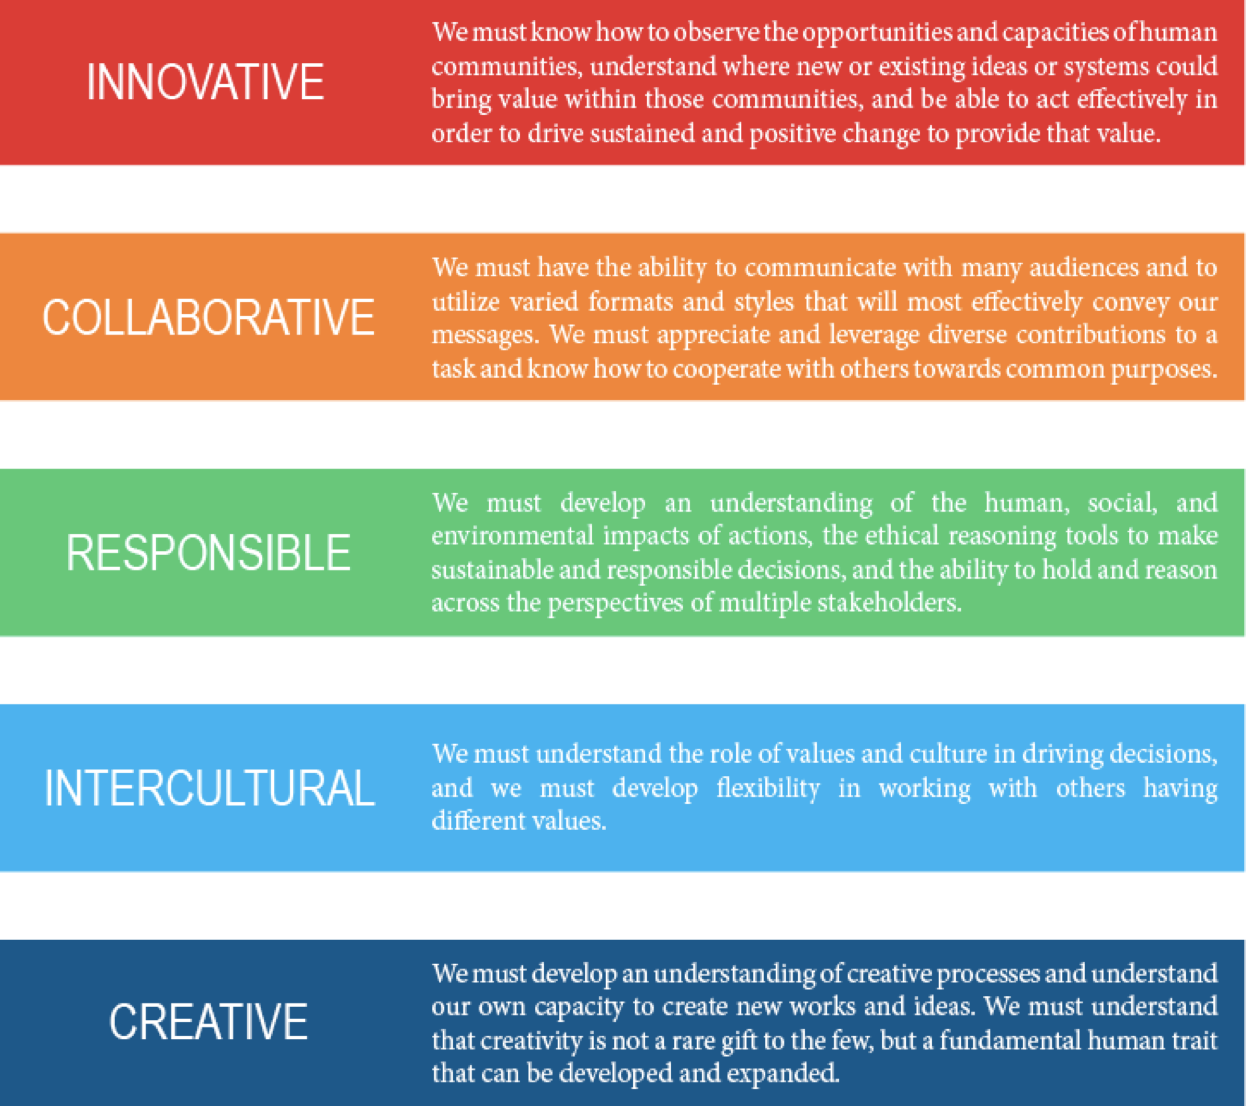 Innovative, Collaborative, Responsible, Intercultural, Cultural